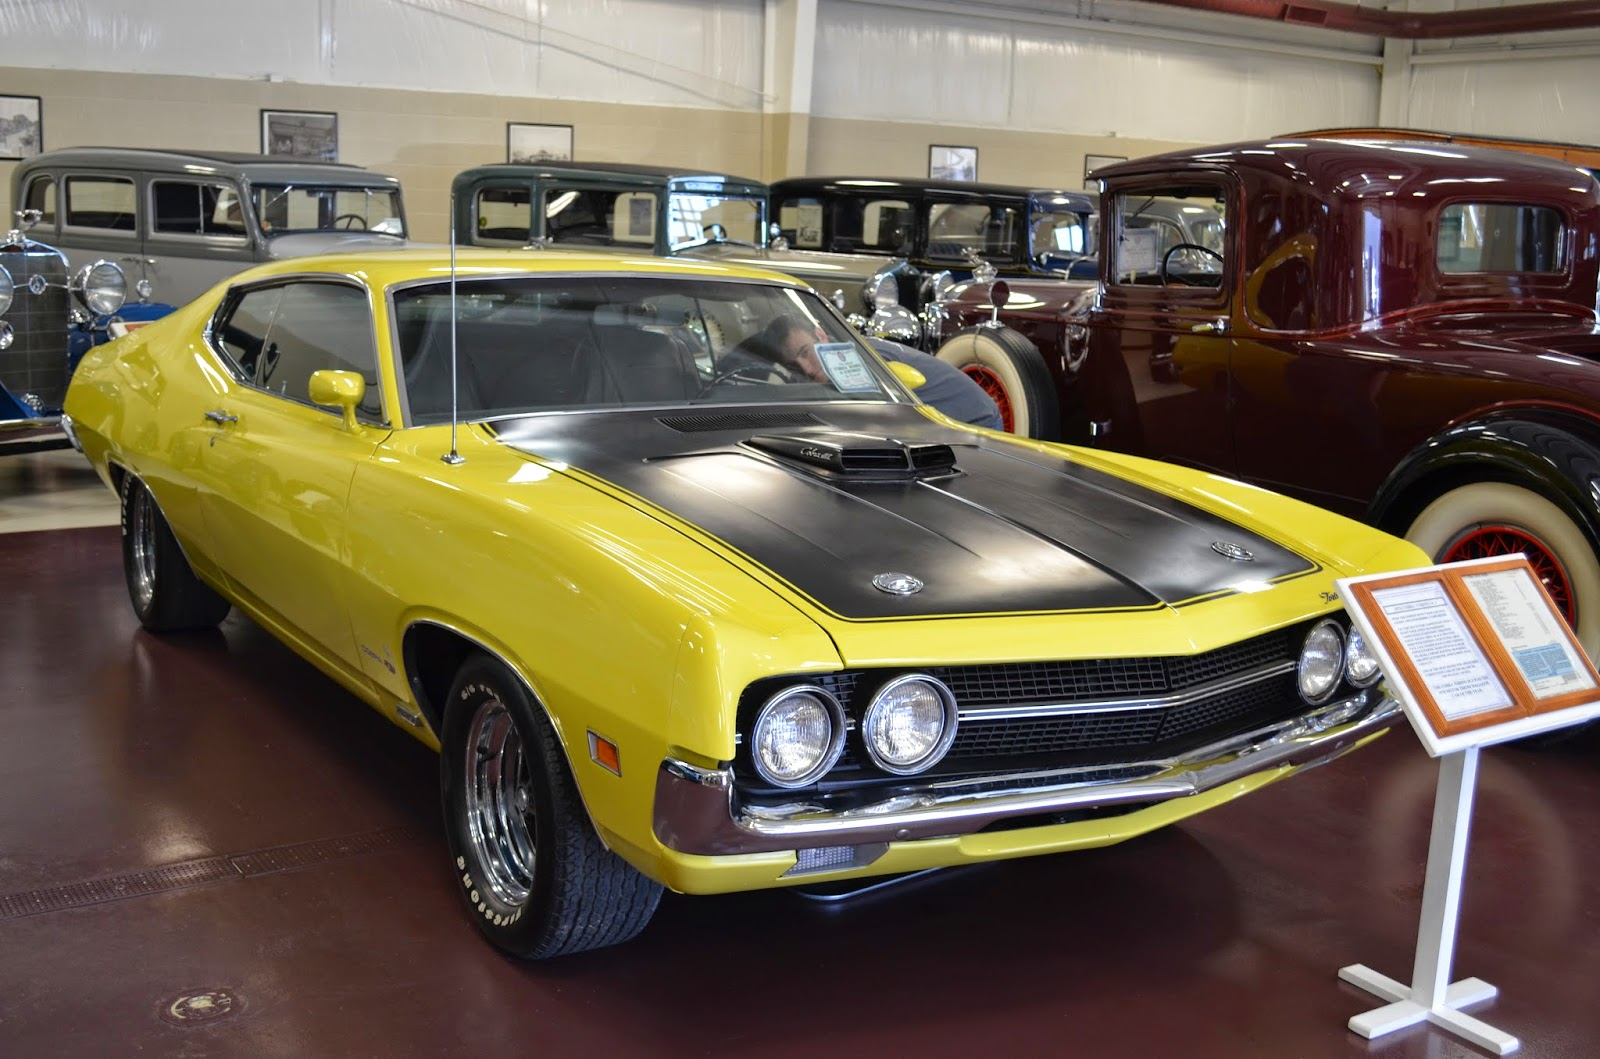 classification essay tuner cars muscle cars The 25 coolest cars of the 1970s  the first challenger made its debut in 1970, and it remains one of the coolest vintage muscle cars you can own.